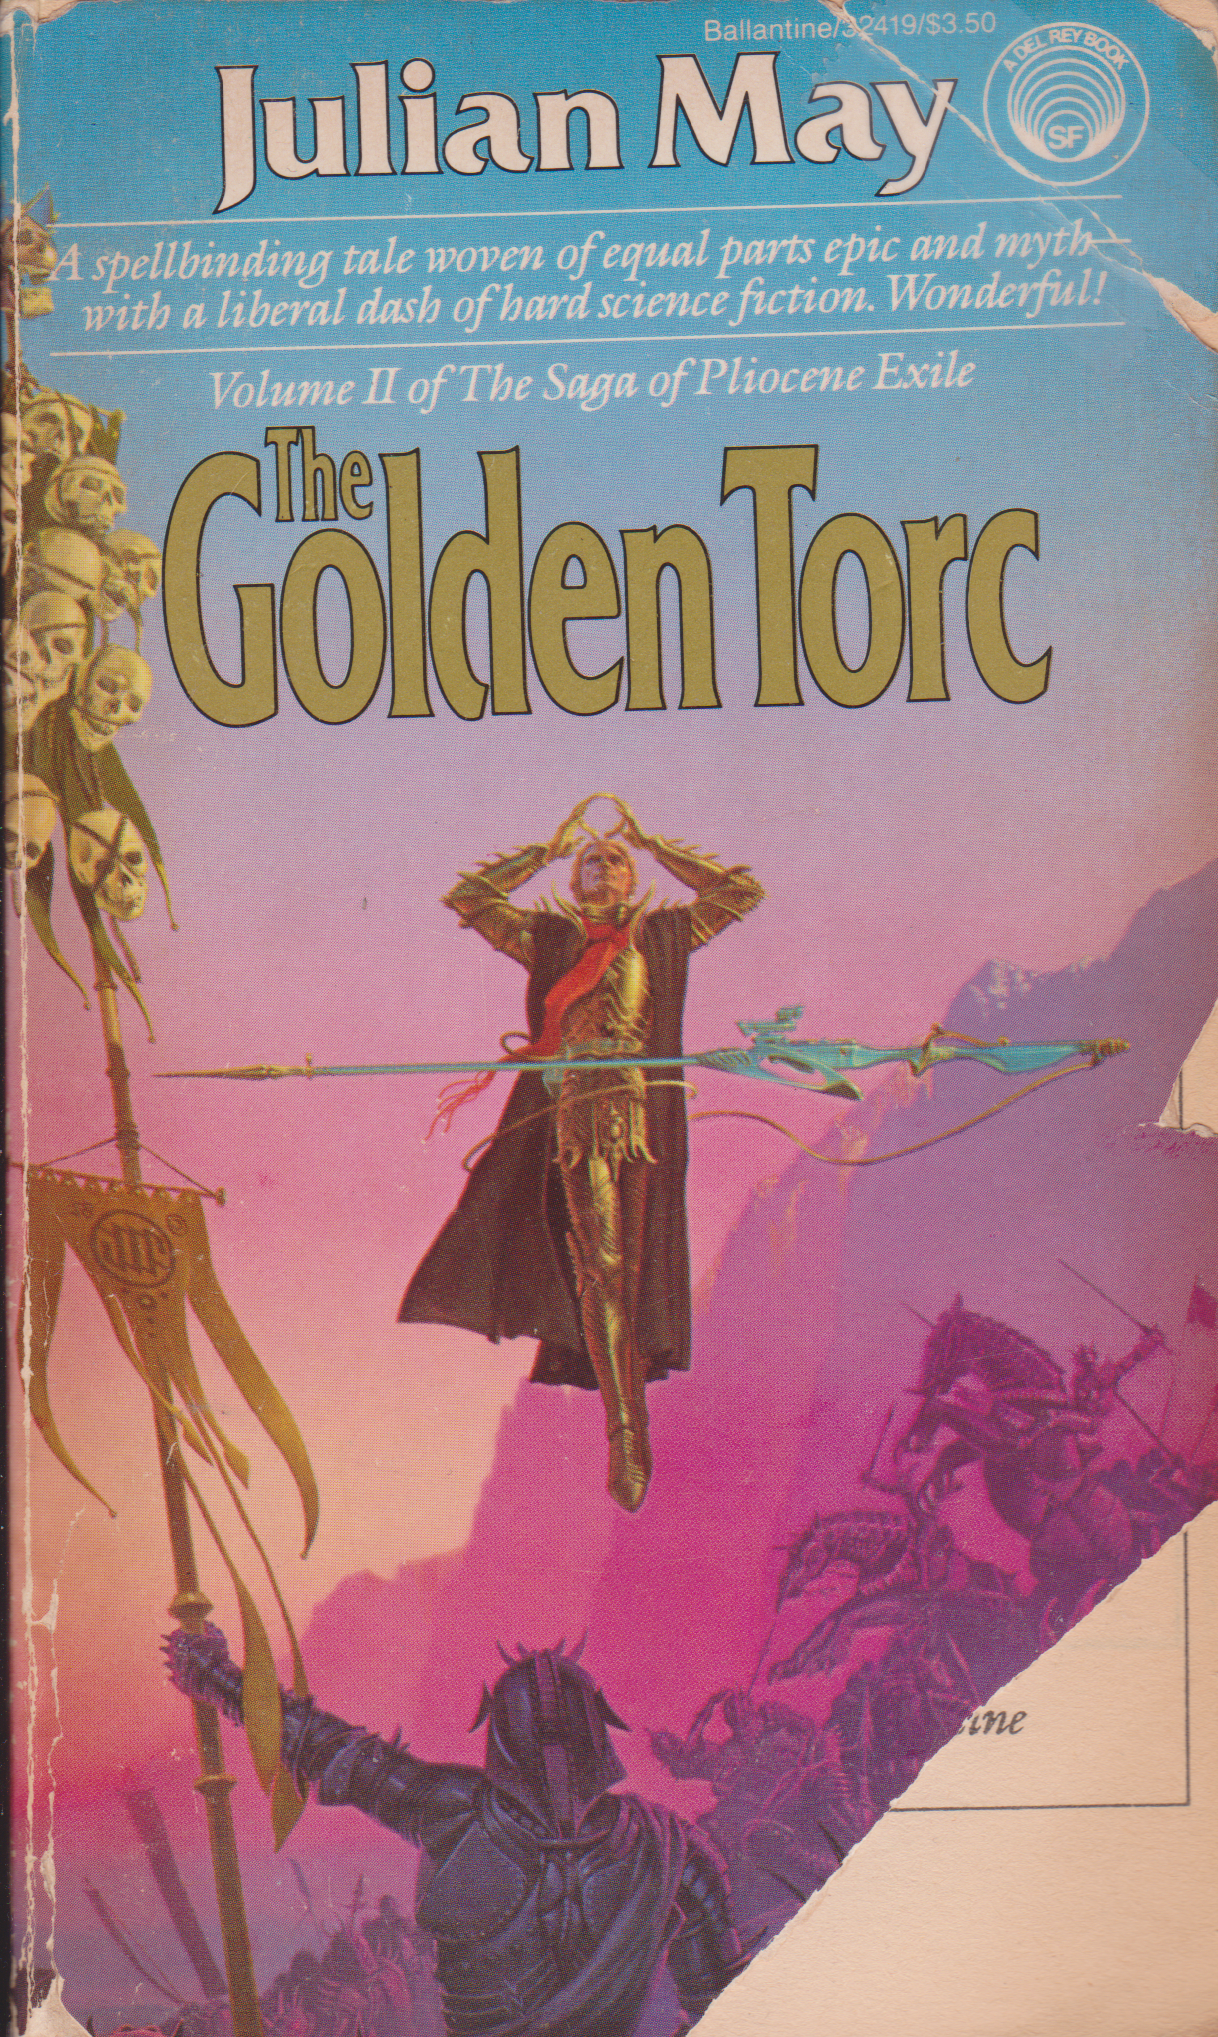 The Golden Torc by Julian May-front.png